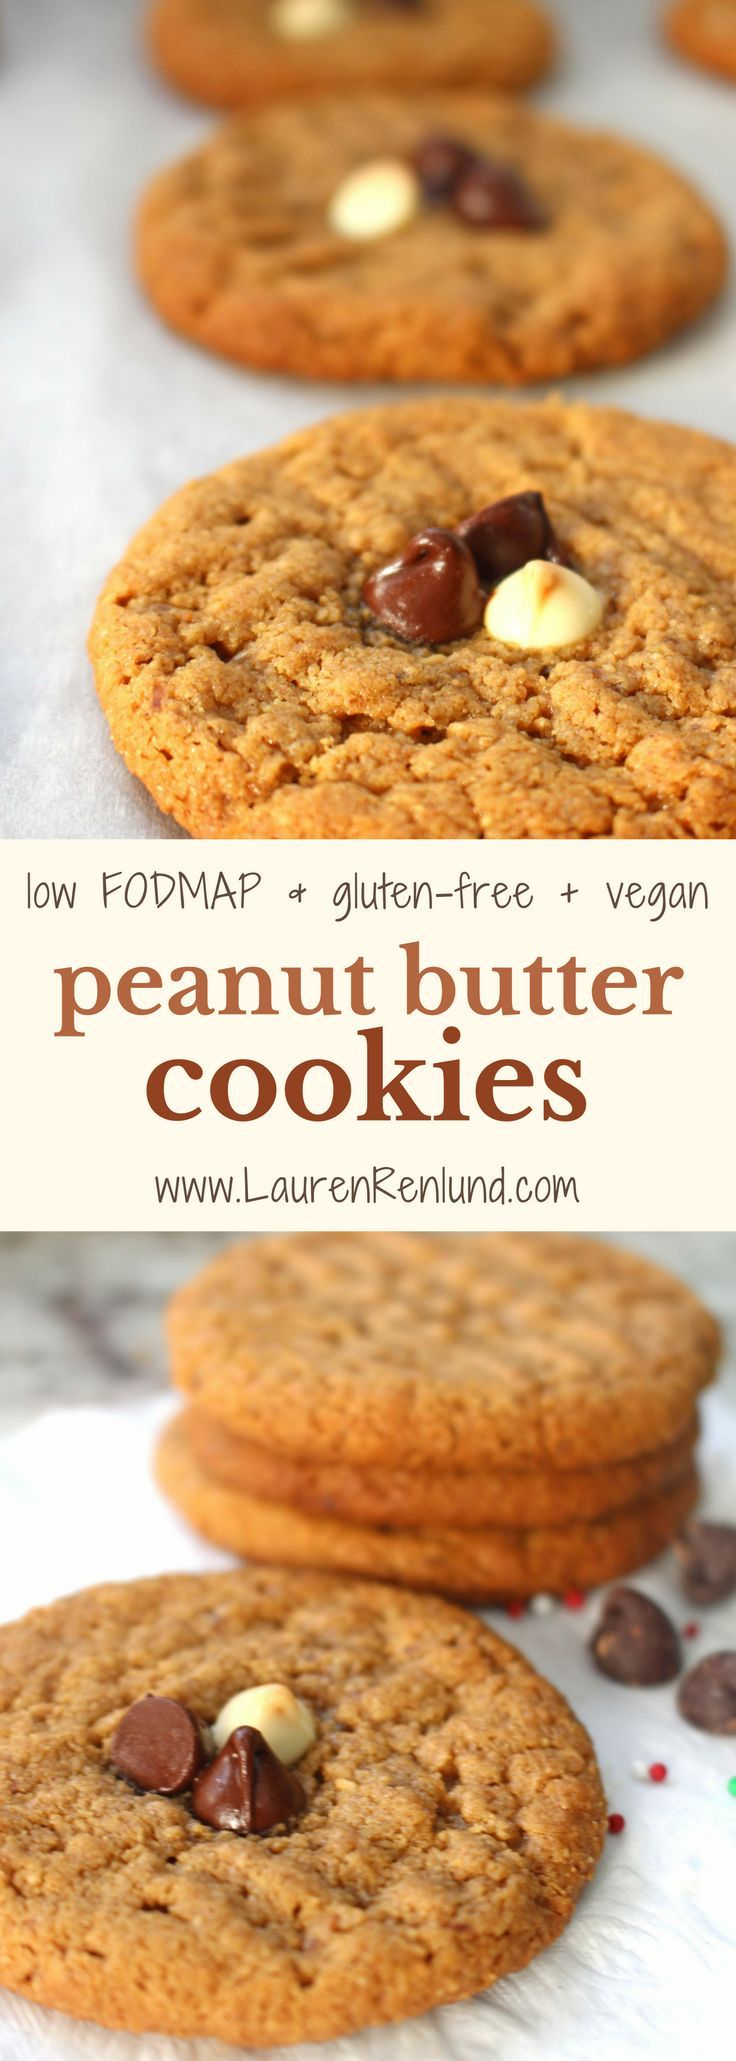 These simple low FODMAP peanut butter cookies only have 3 essential ingredients, so easy to make! Also gluten-free, dairy-free and vegan!